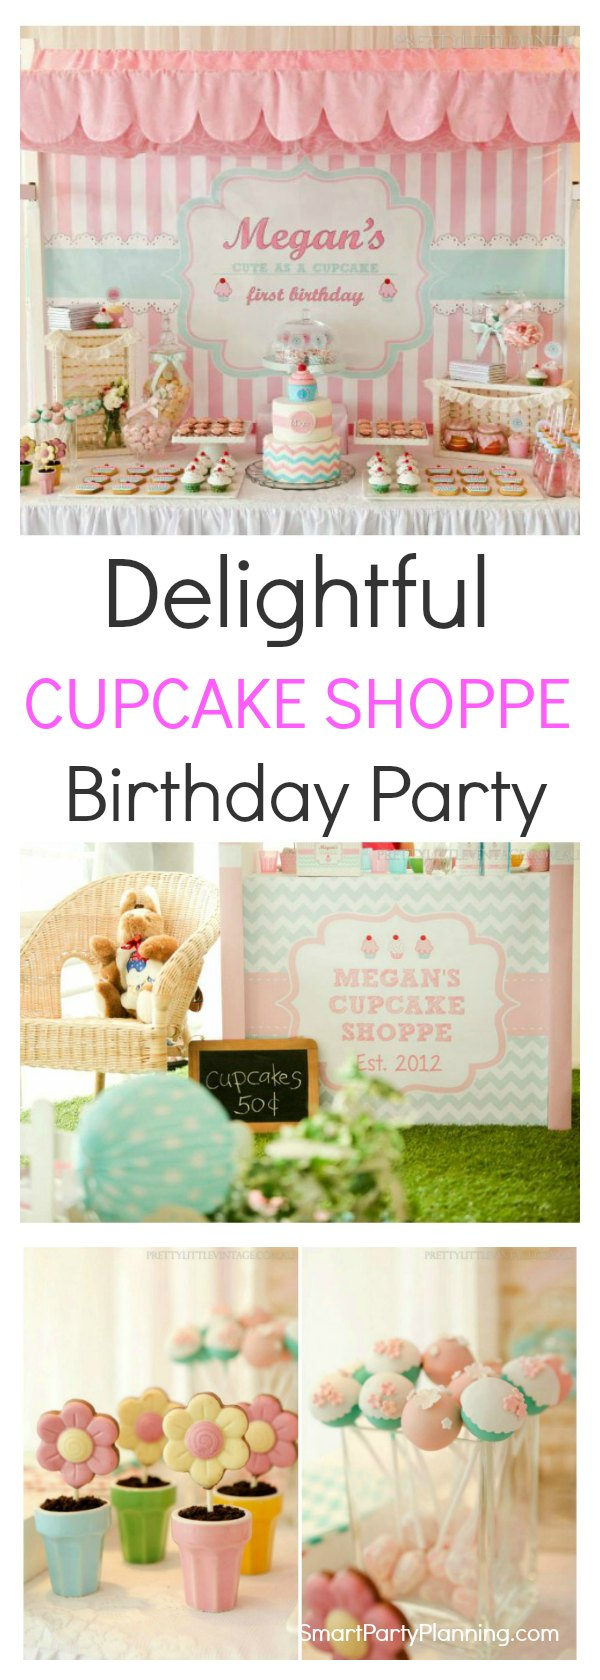 A cupcake shoppe birthday party has to be every child's dream.  Not only is this party beautifully styled, but everything tastes absolutely amazing.  This is one of those gorgeous party ideas that will quickly become one of your favorites.